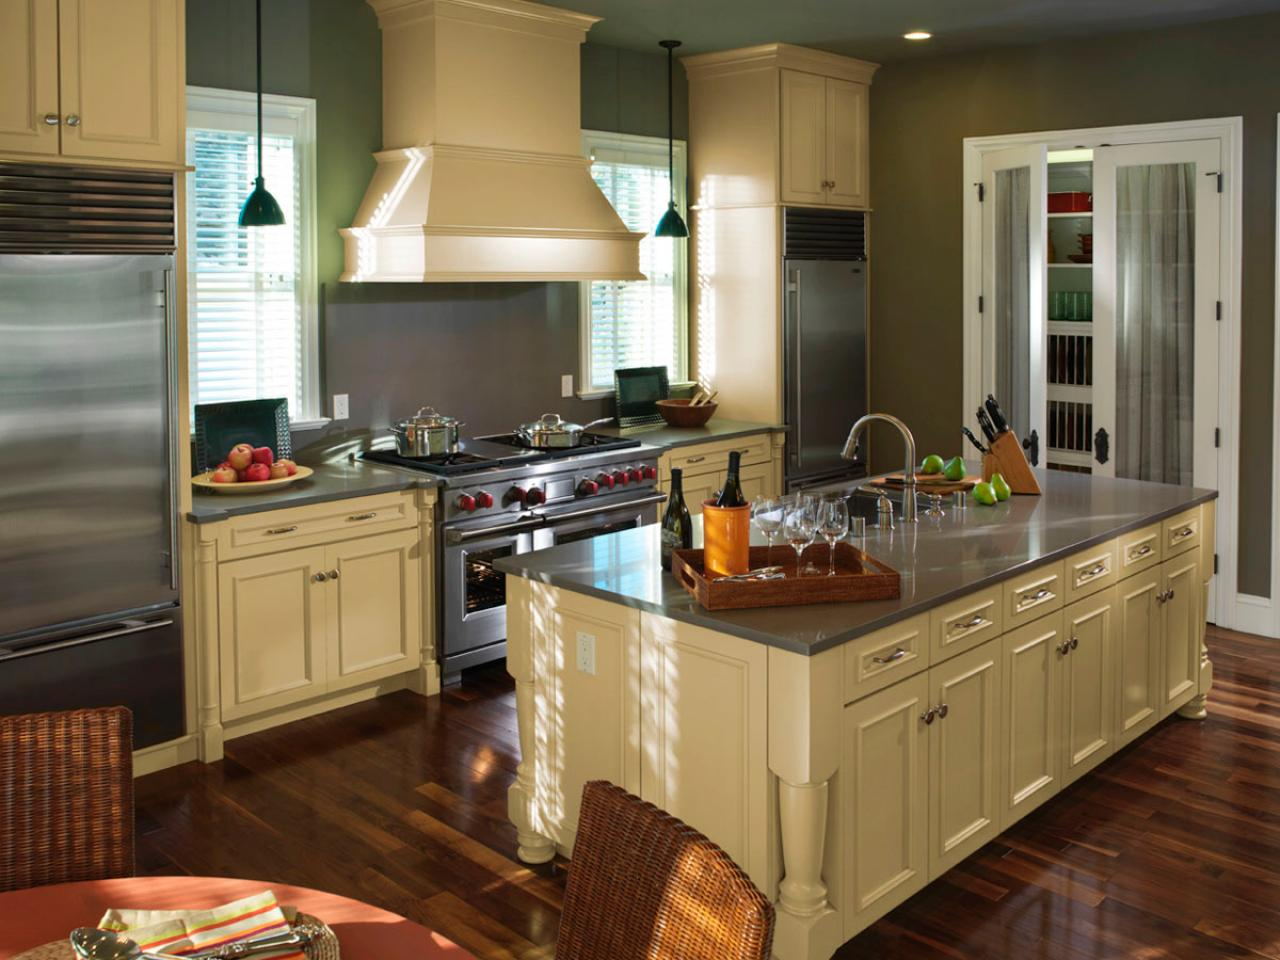 Kitchen Plans With Island kitchen layout templates: 6 different designs | hgtv